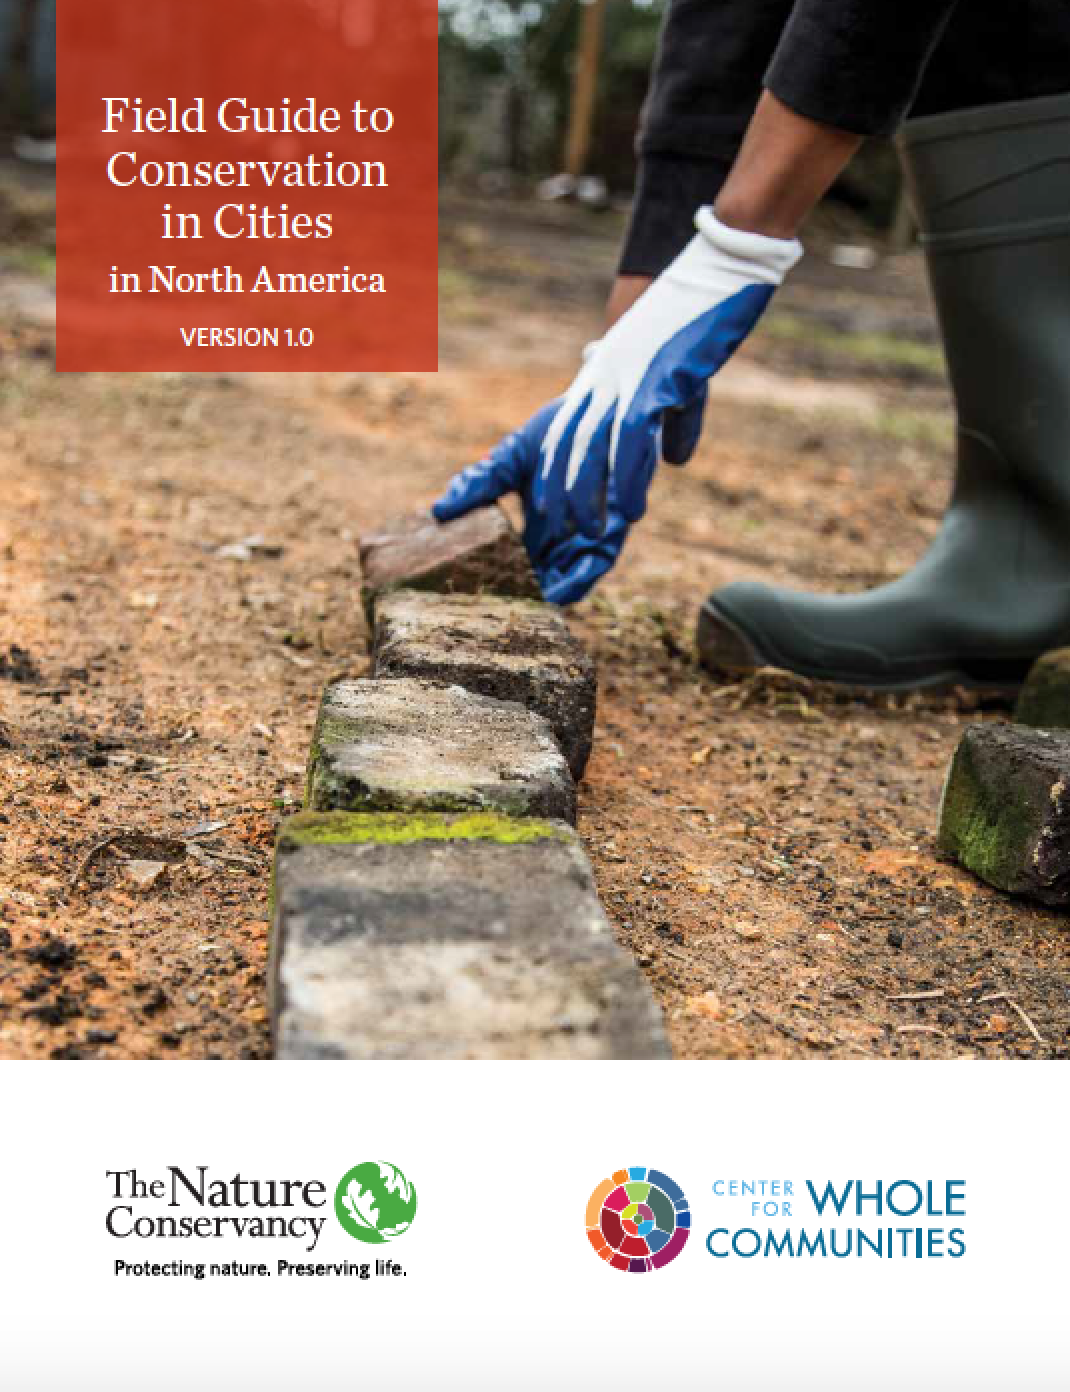 Field Guide to Conservation in Cities in North America